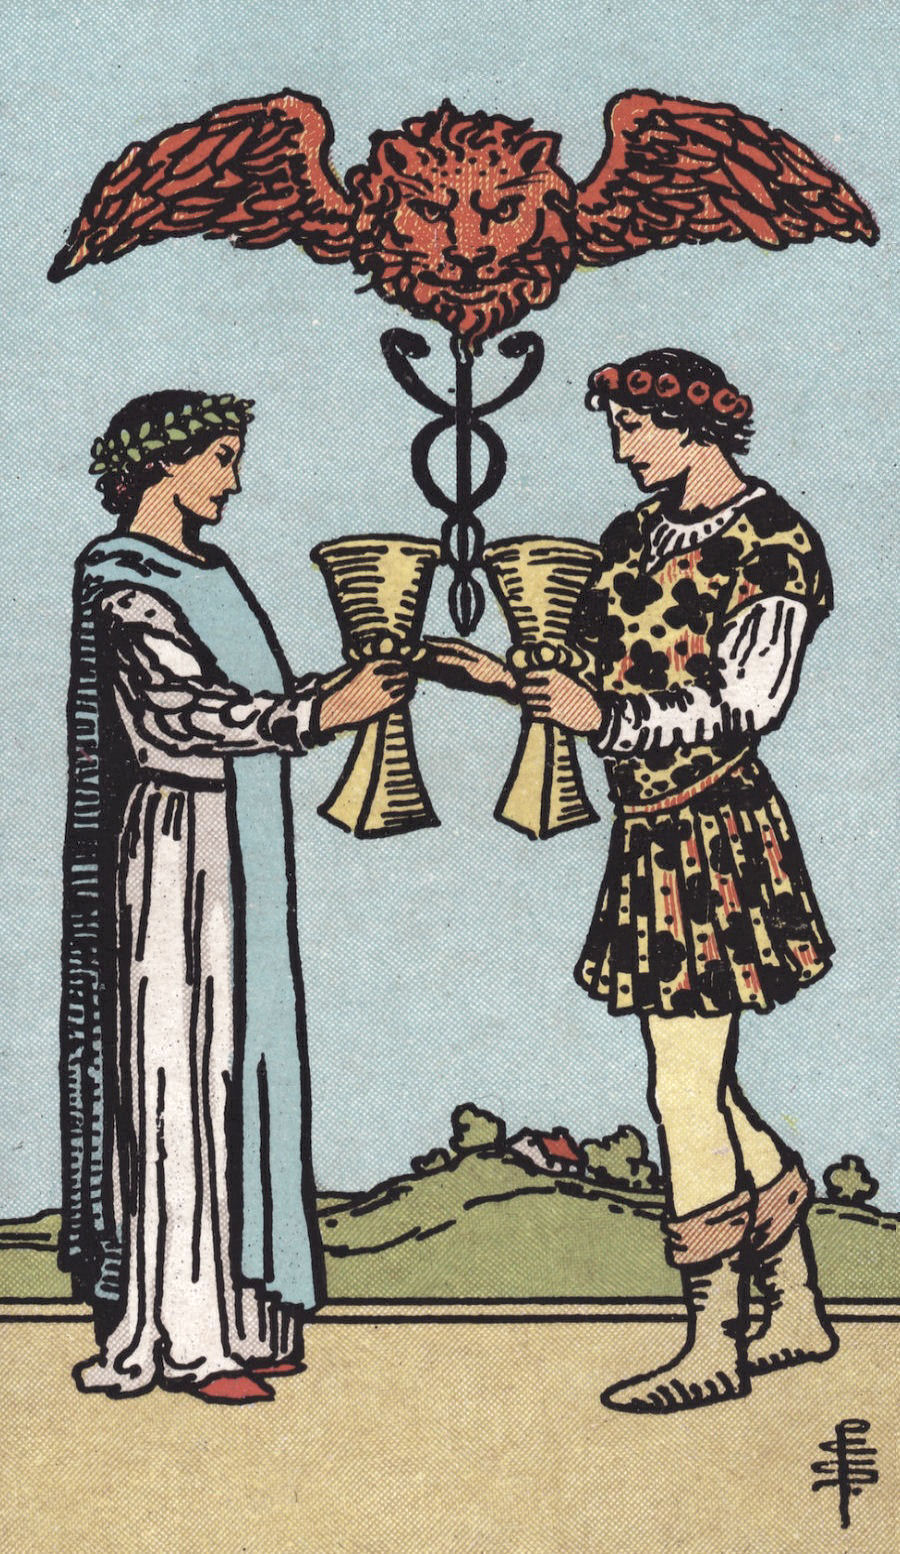 Rider Waite Smith Two of Cups Tarot Card Meaning